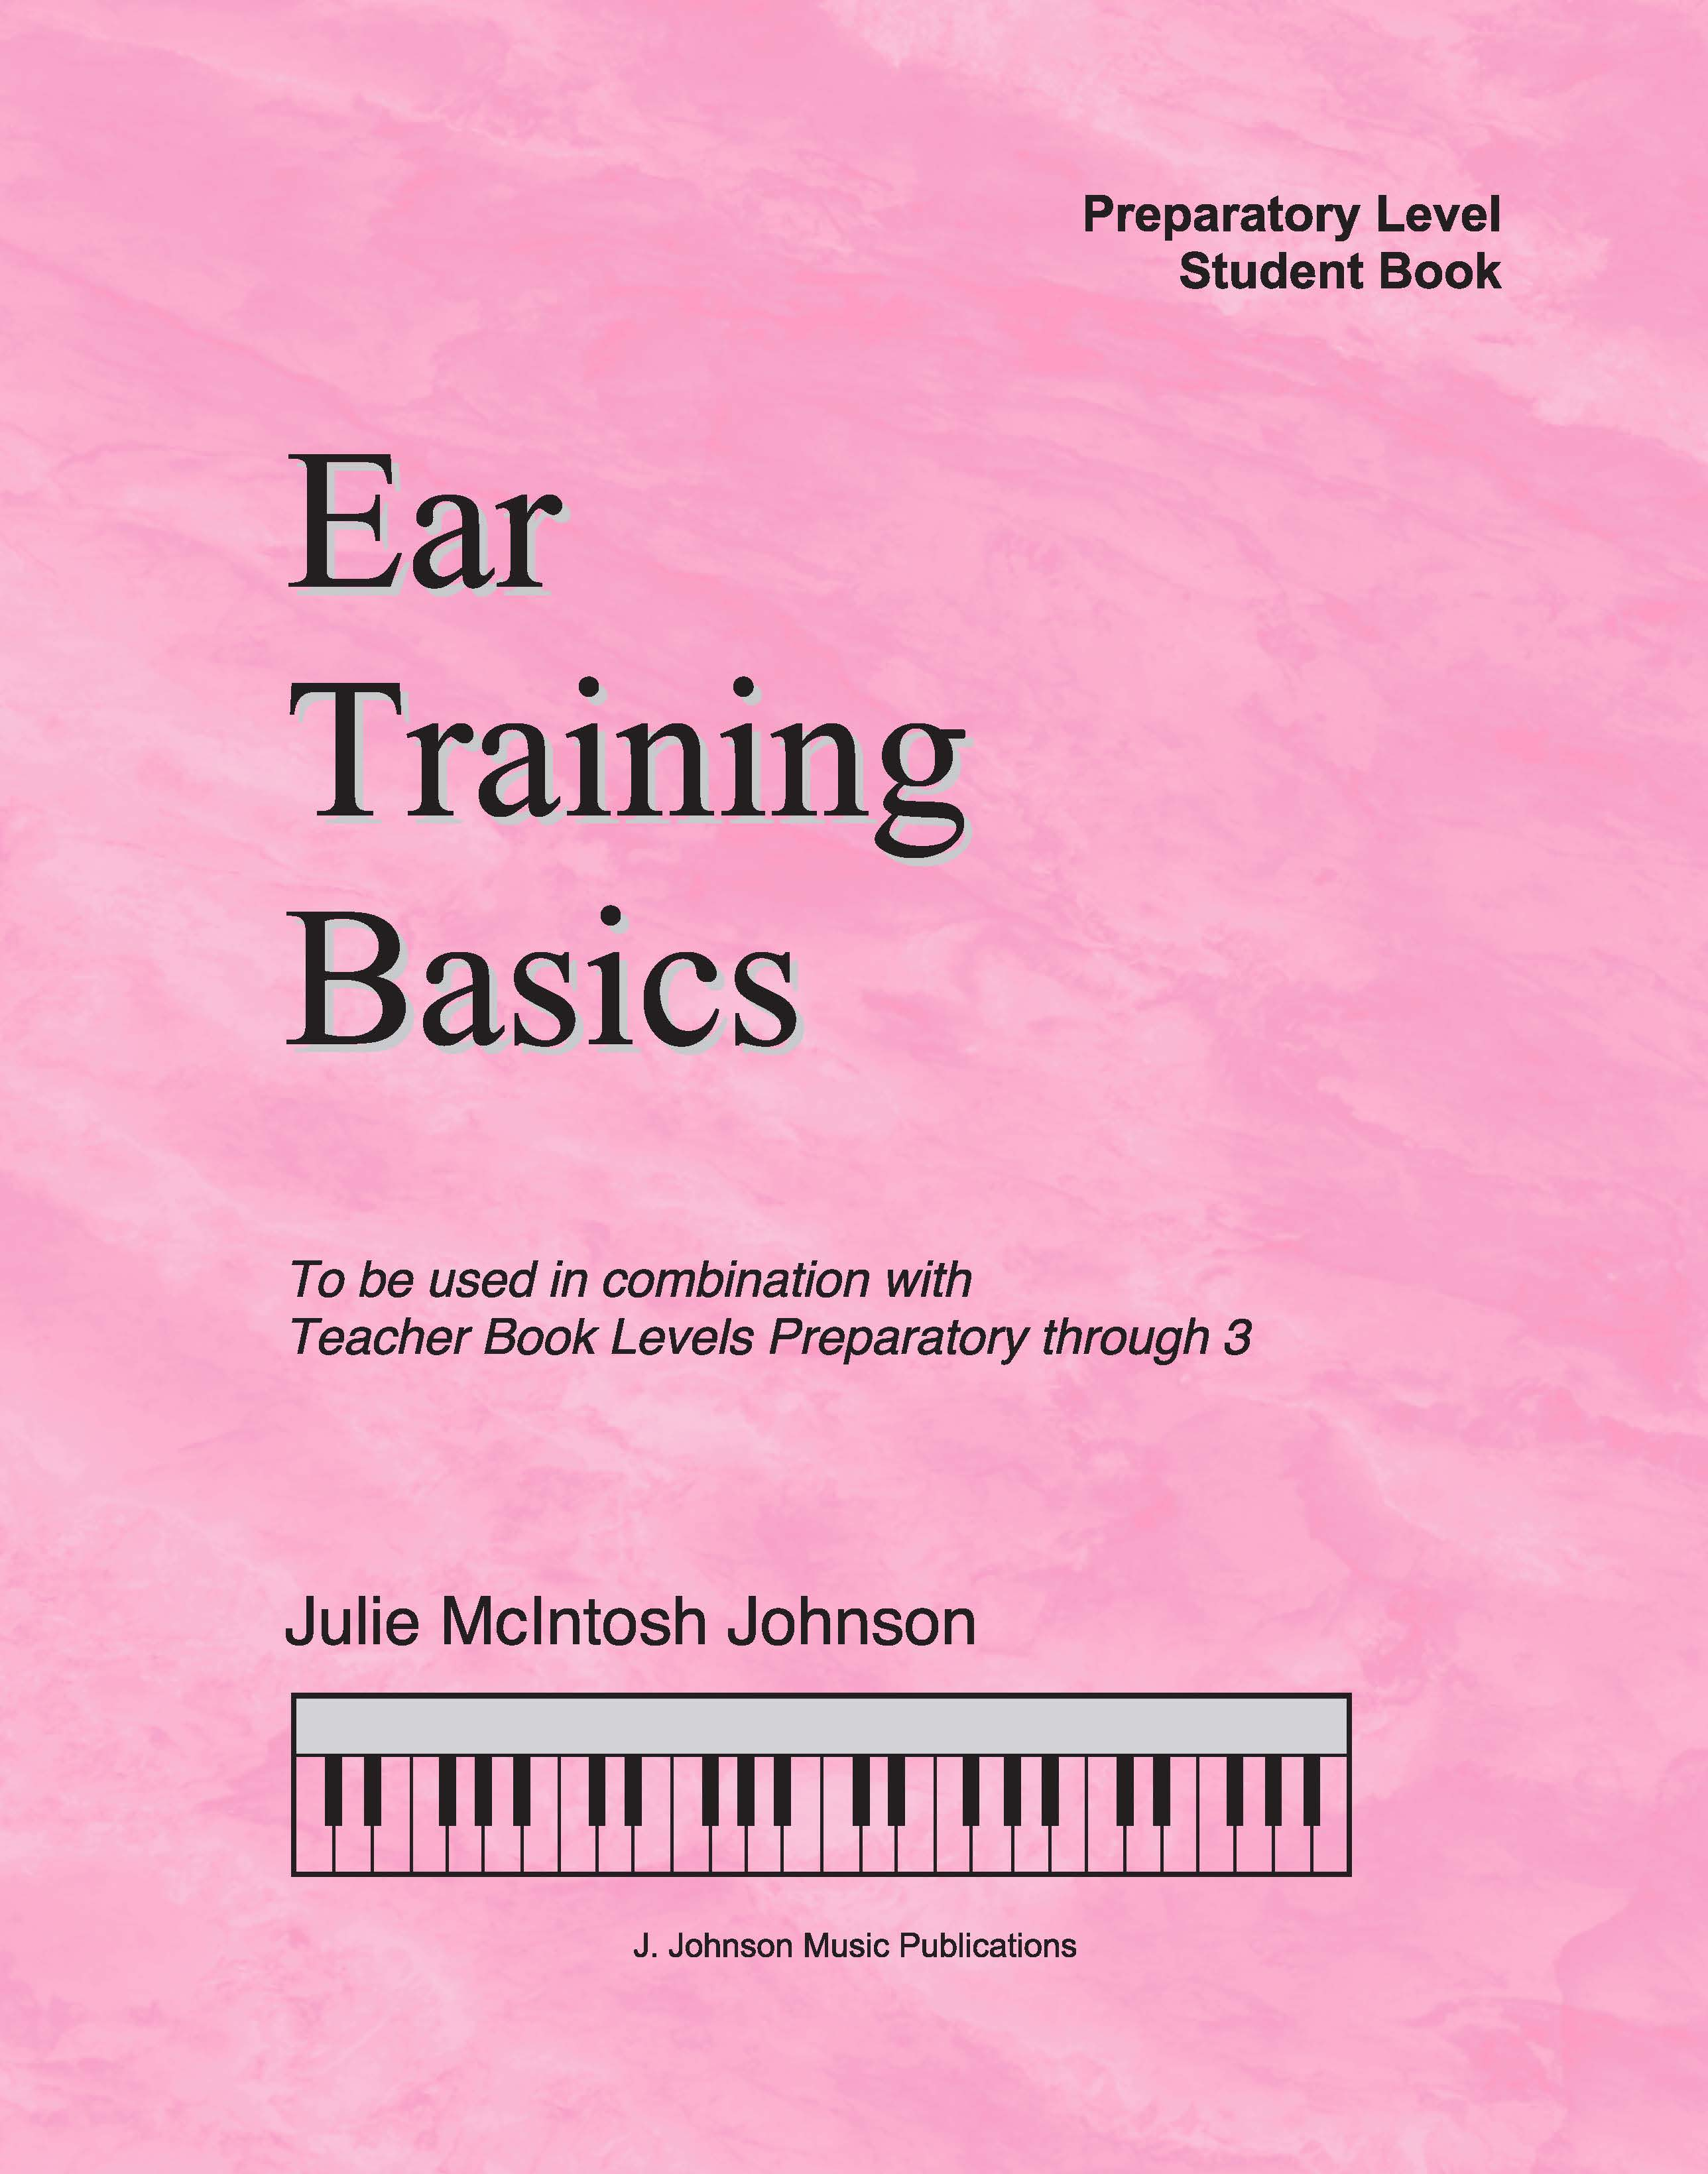 Ear Training Basics Prep Level